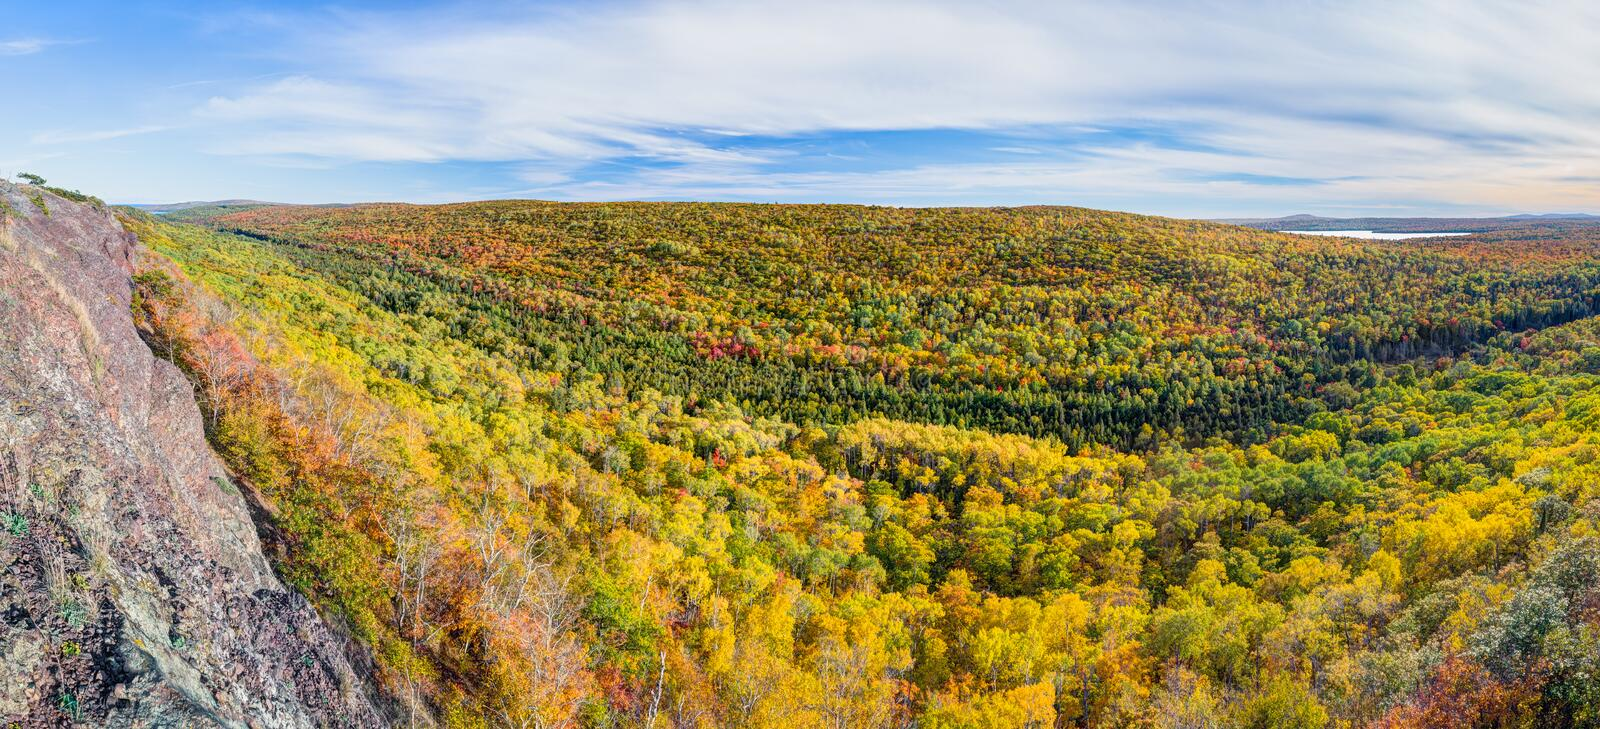 Brockway Autumn. Colorful autumn foliage decorates the hillsides viewed from Brockway Mountain Drive near Copper Harbor on the Keweenaw Peninsula of upper stock photo